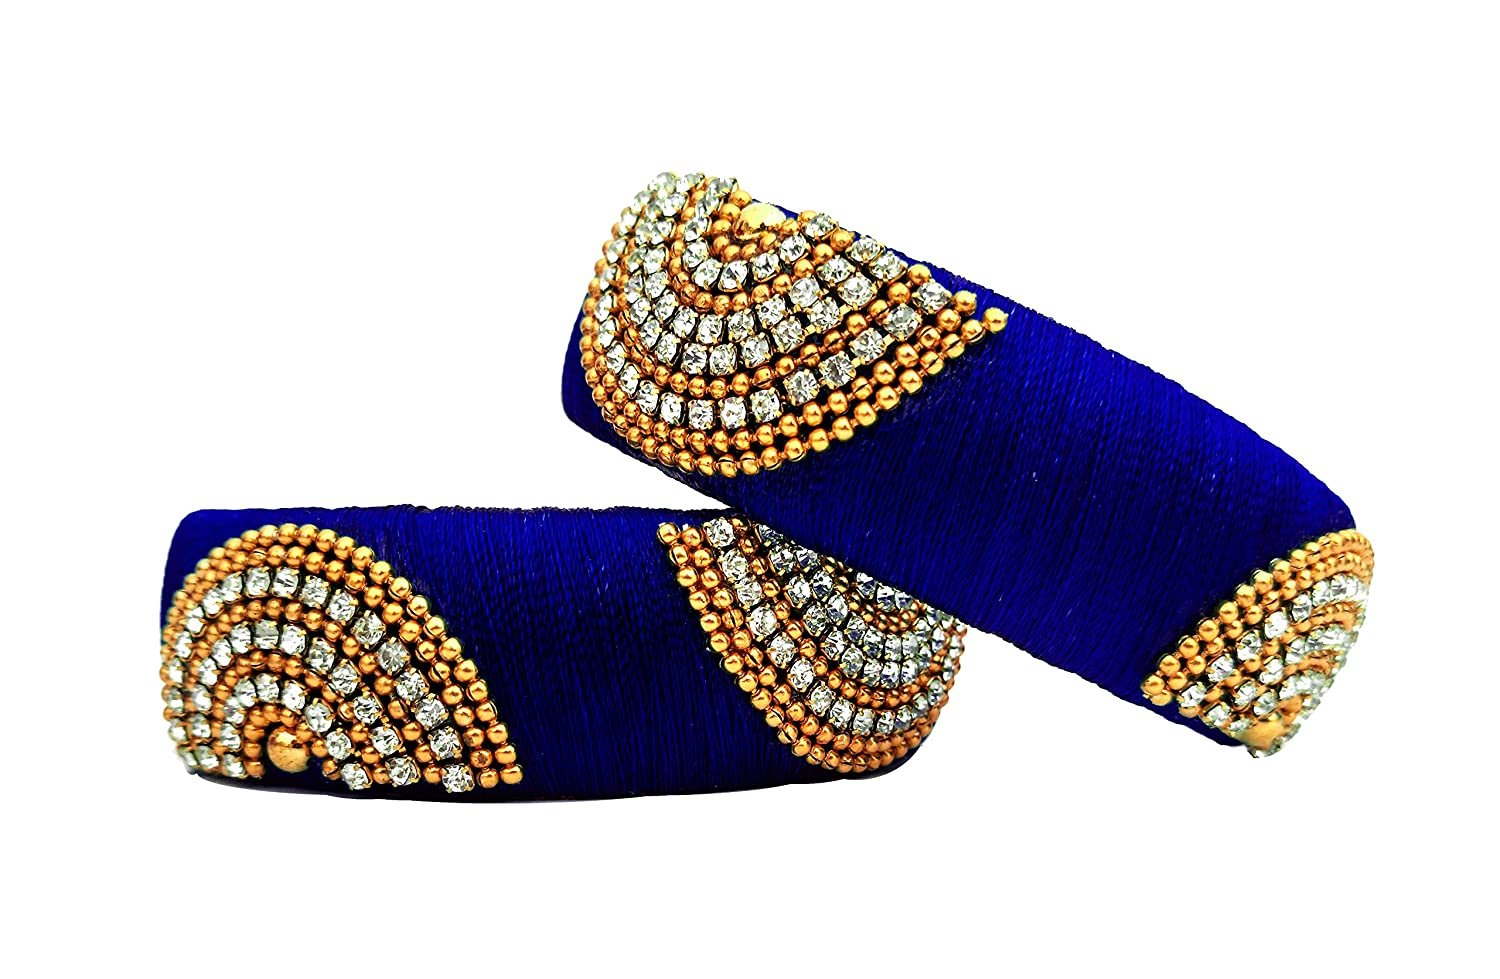 Buy Youth Royal Blue Silk Thread Bangle Set For Women At Amazon In